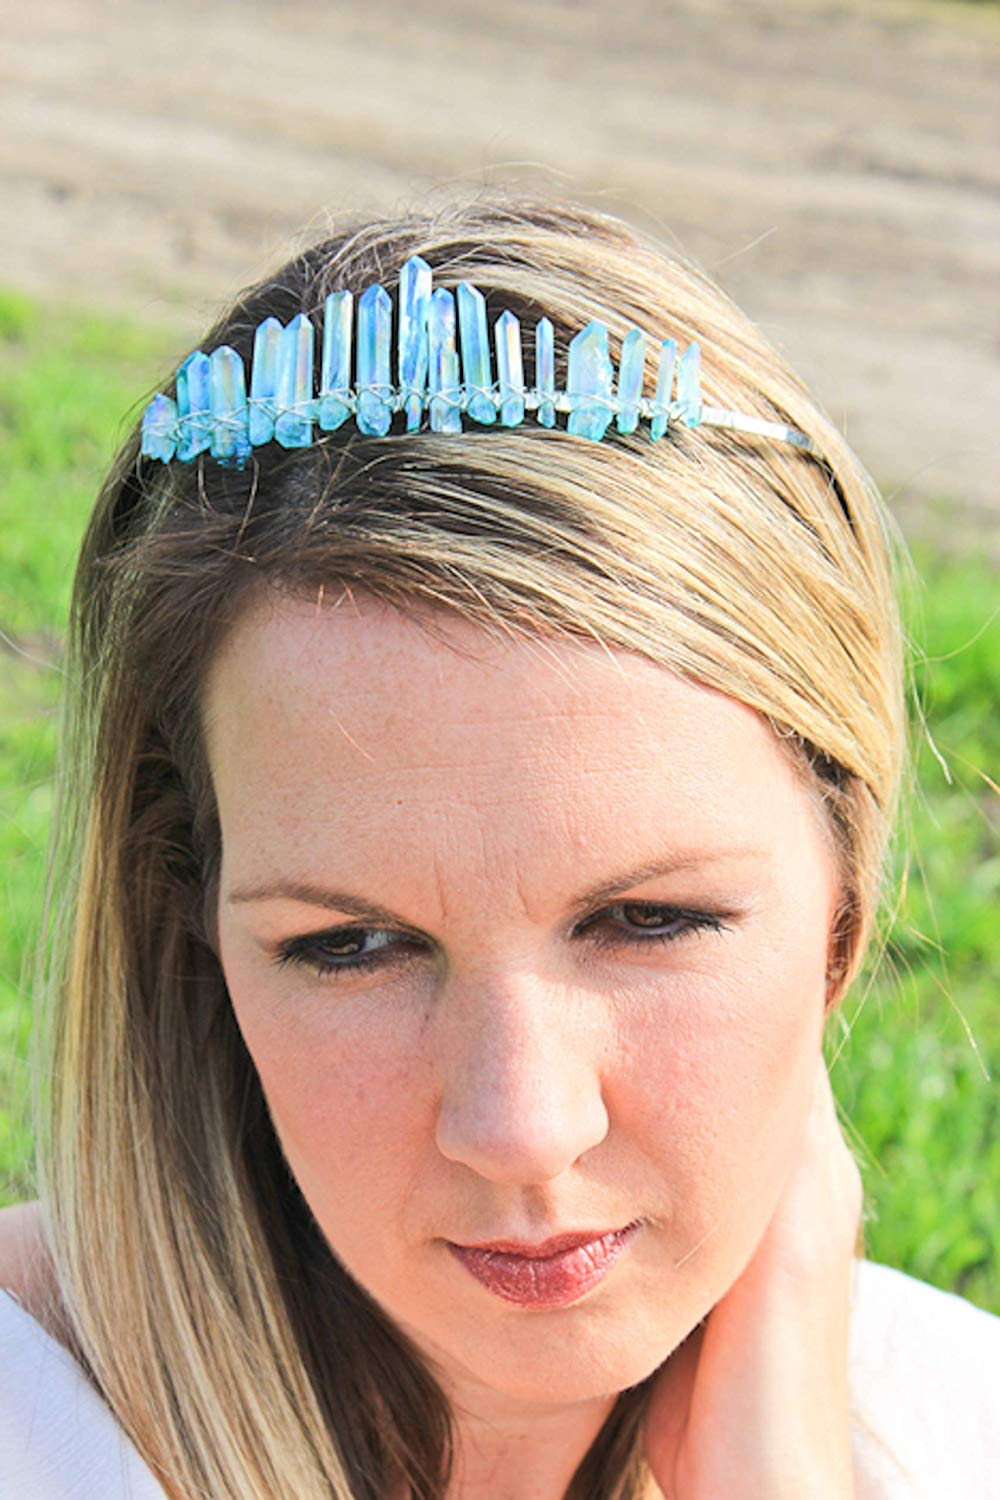 raw crystal crown, crystal crown, quartz tiara, aura quartz crown, mermaid crown, crystal headband, quartz crown, bridal crown, boho bridal crown energized jewels